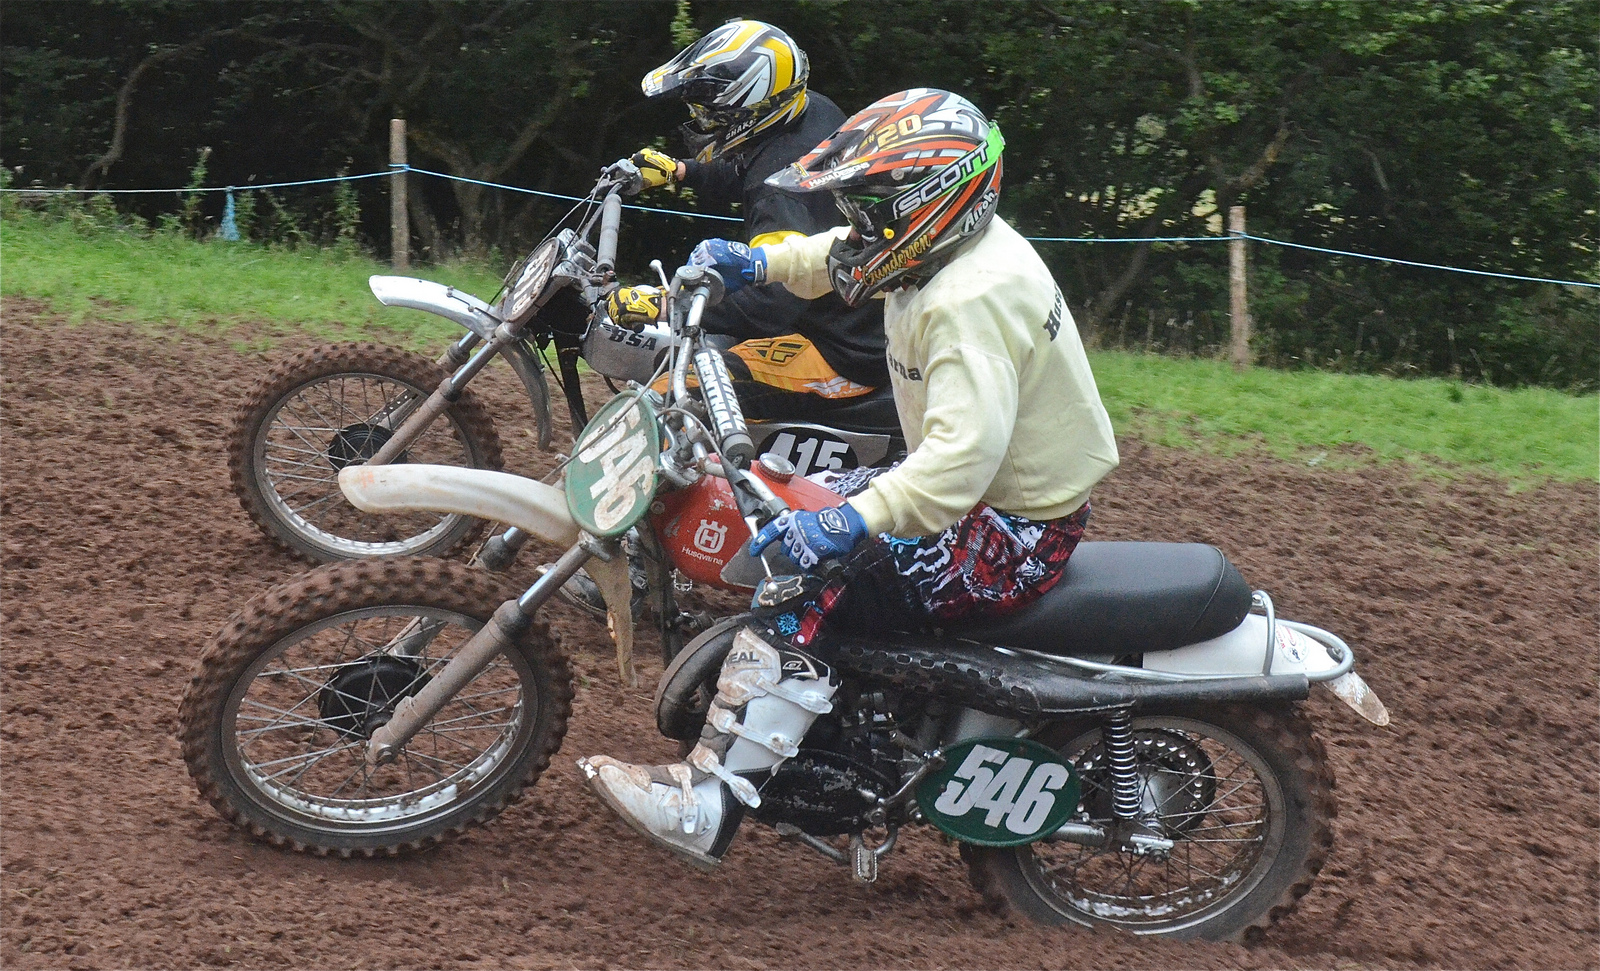 Llanthony Classic Scramble Photos September 2015 classicdirtbikerider.com..48